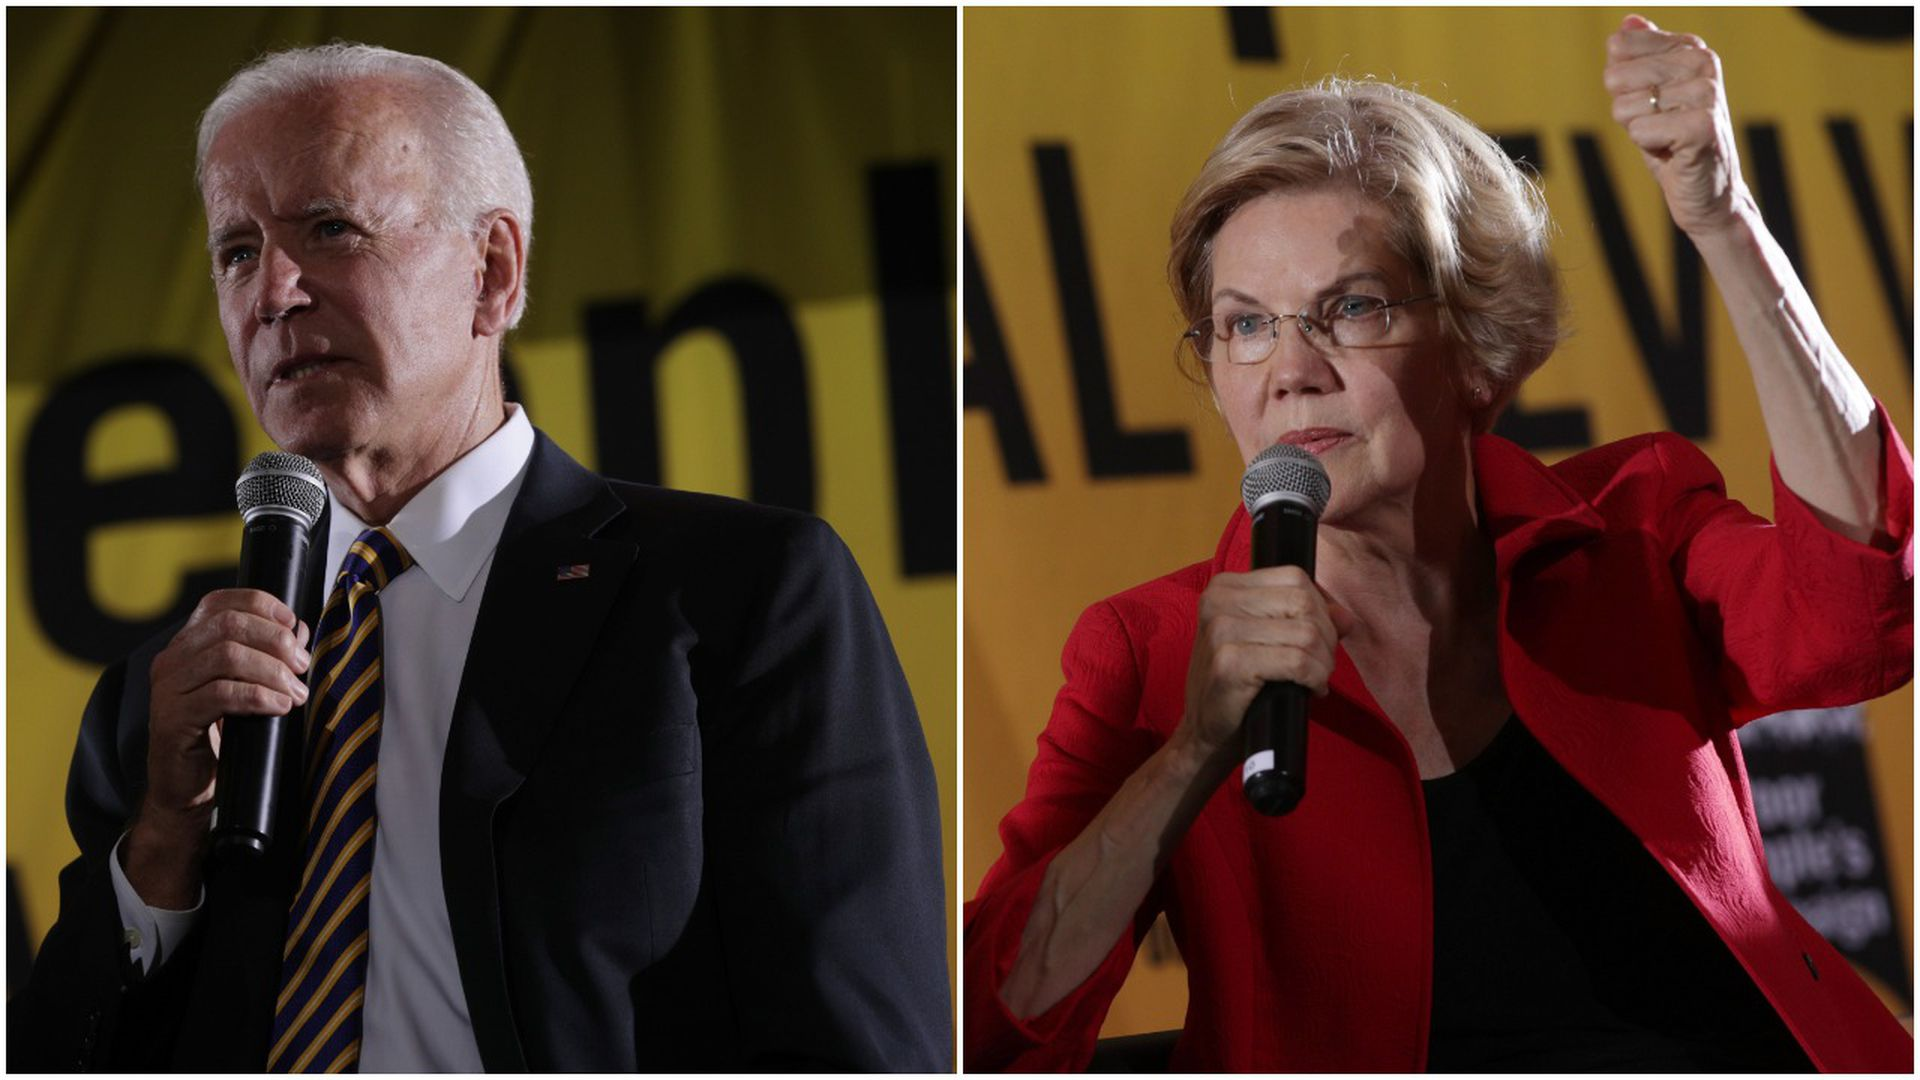 This image is a split-screen of Joe Biden and Elizabeth Warren, both standing and speaking into microphones.